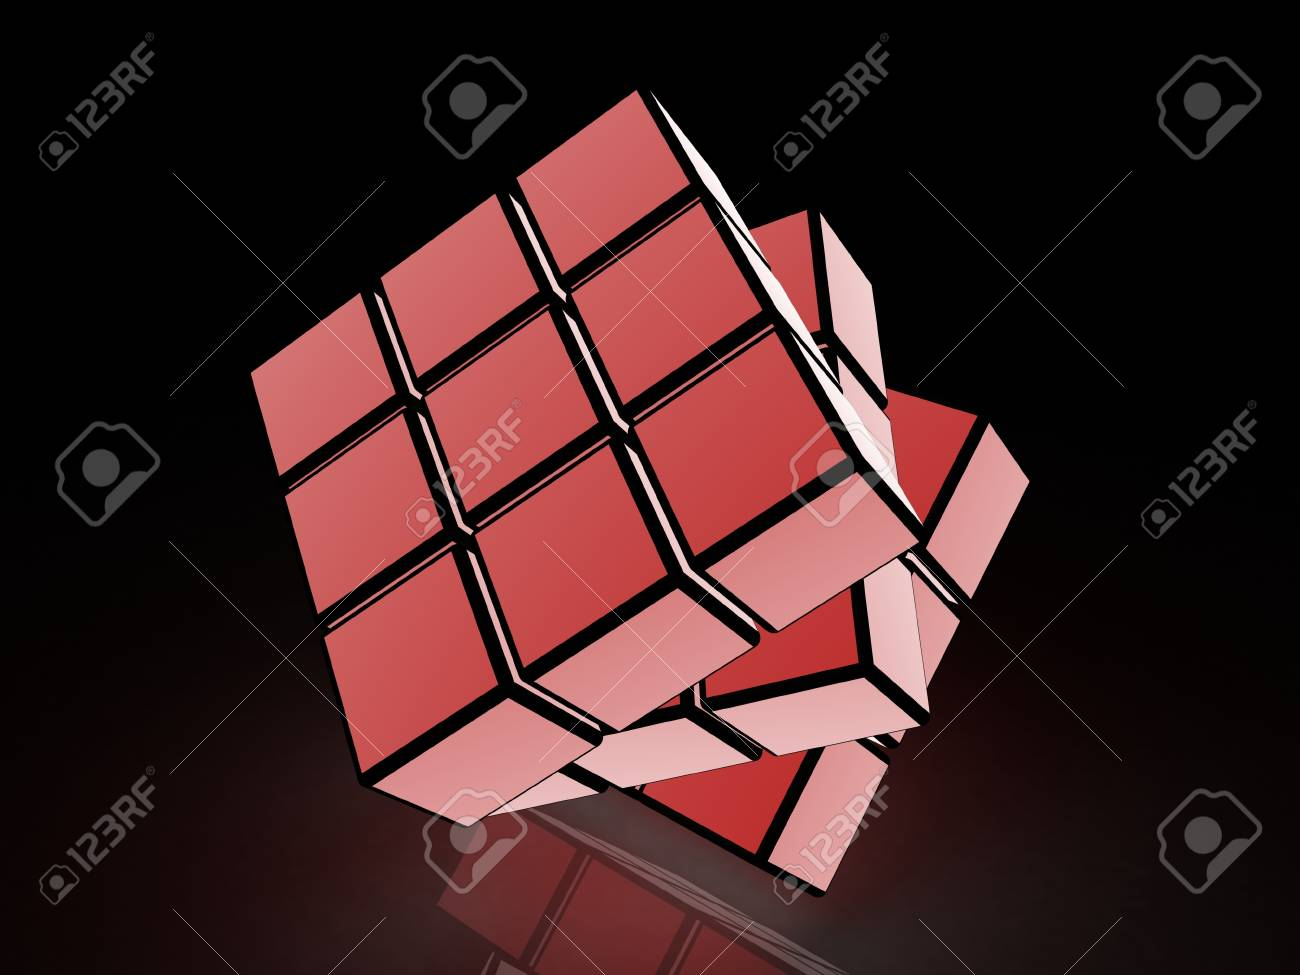 cube with light images on a black background Stock Photo - 17234471